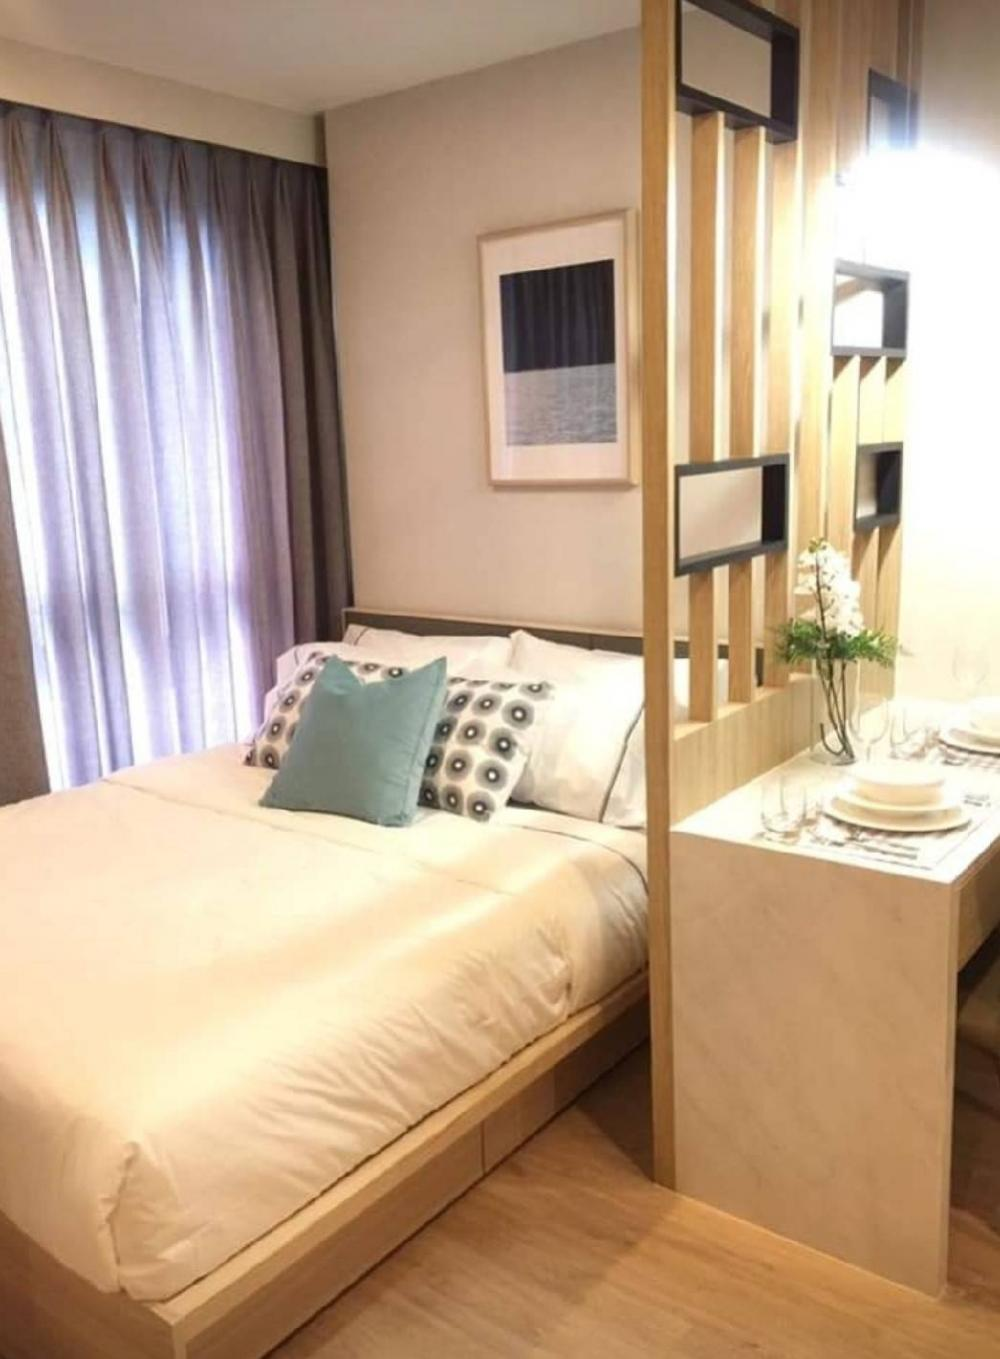 For RentCondoBangna, Lasalle, Bearing : TG8-0164 Urgent for rent, IDEO O2 Condo, Bangna, near BTS Bangna, only 350 meters Beautiful room ready. Negotiable price !!